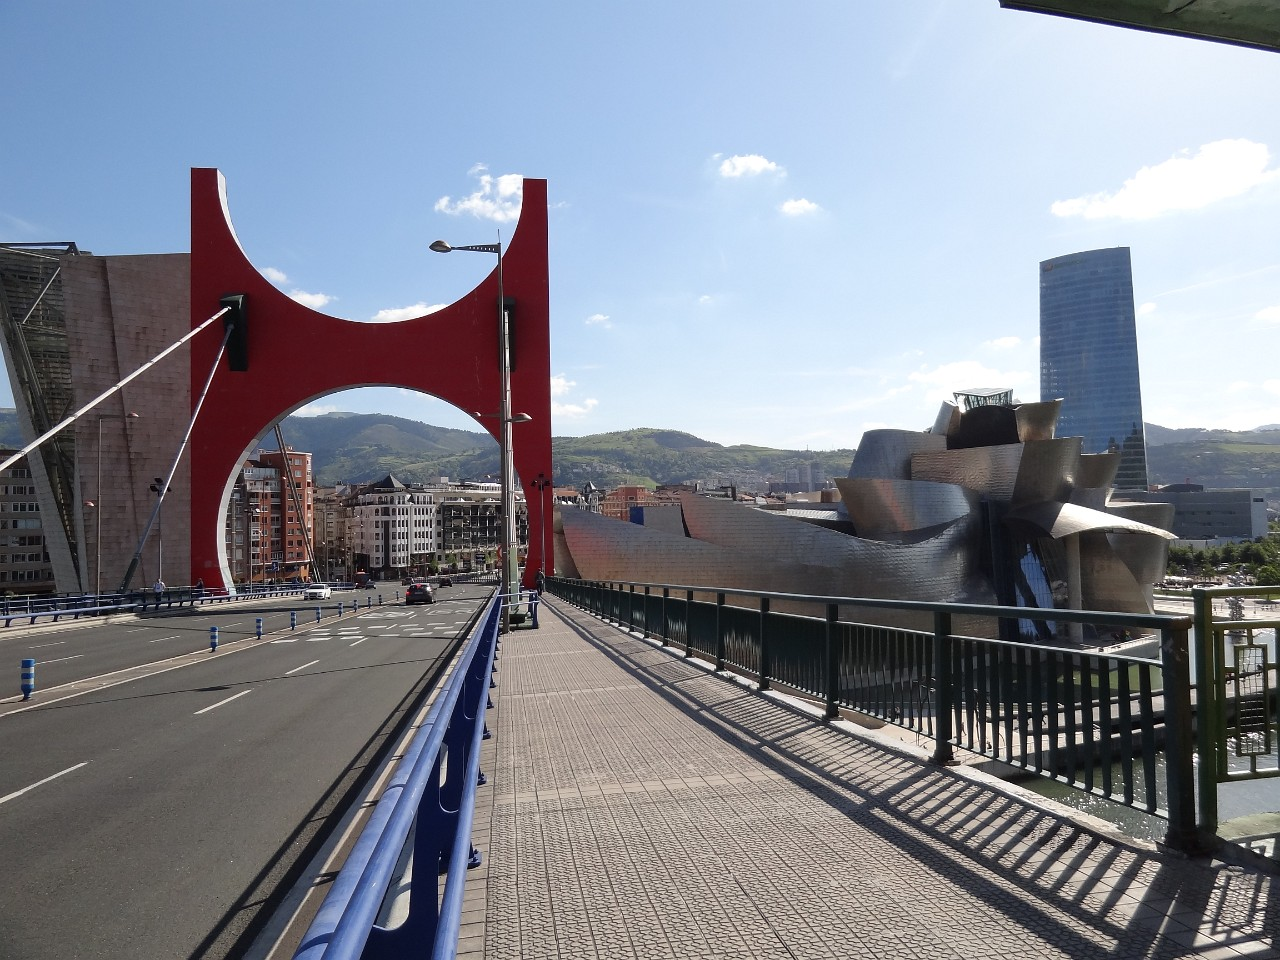 Bilbao Guggenheim and the Red Arc of La Salve Bridge